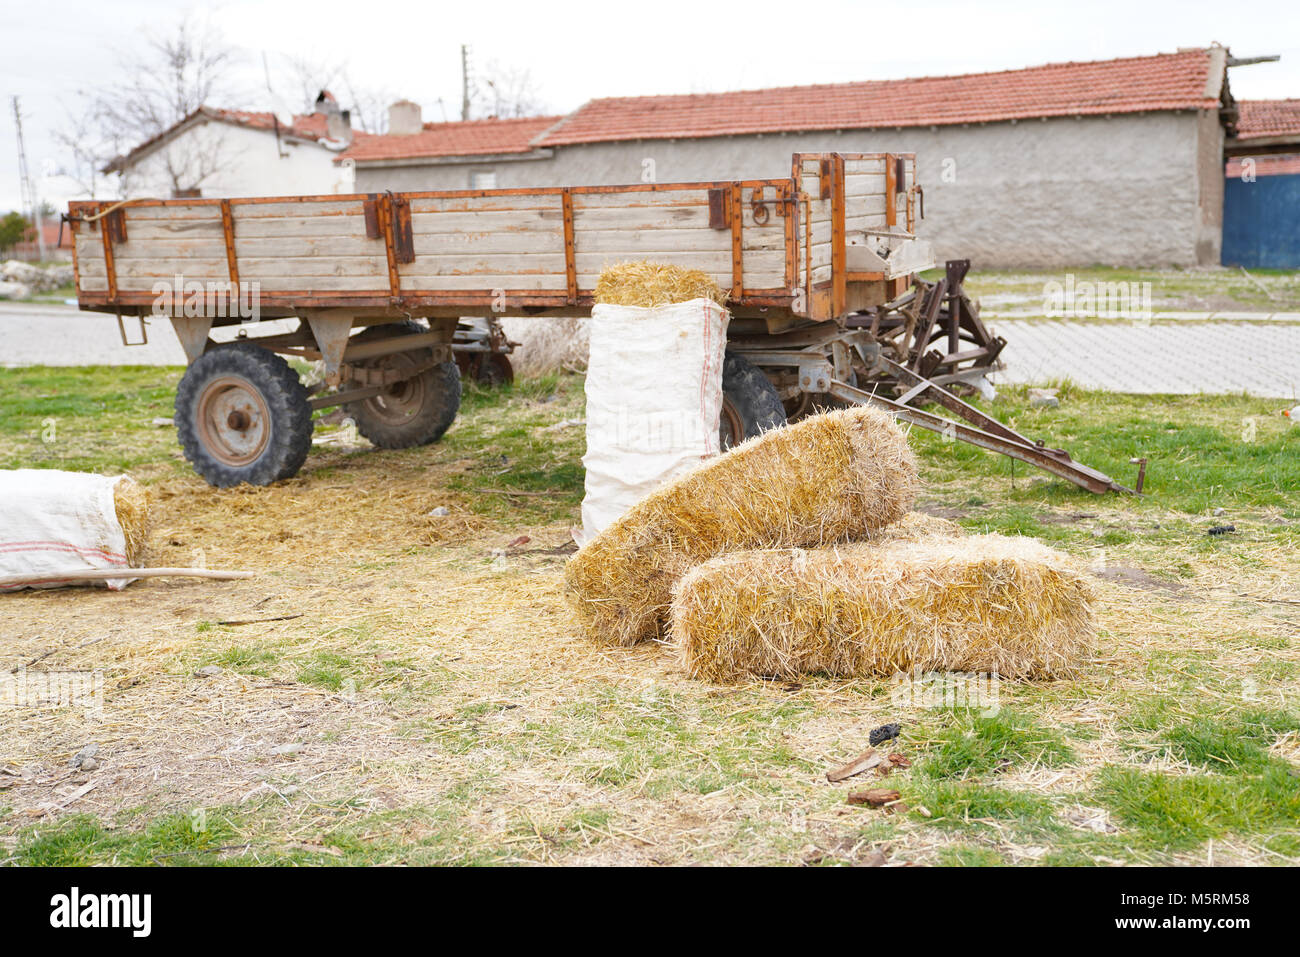 Several hay bales next to the tractor trailer and country houses and hayloft in background - Stock Image